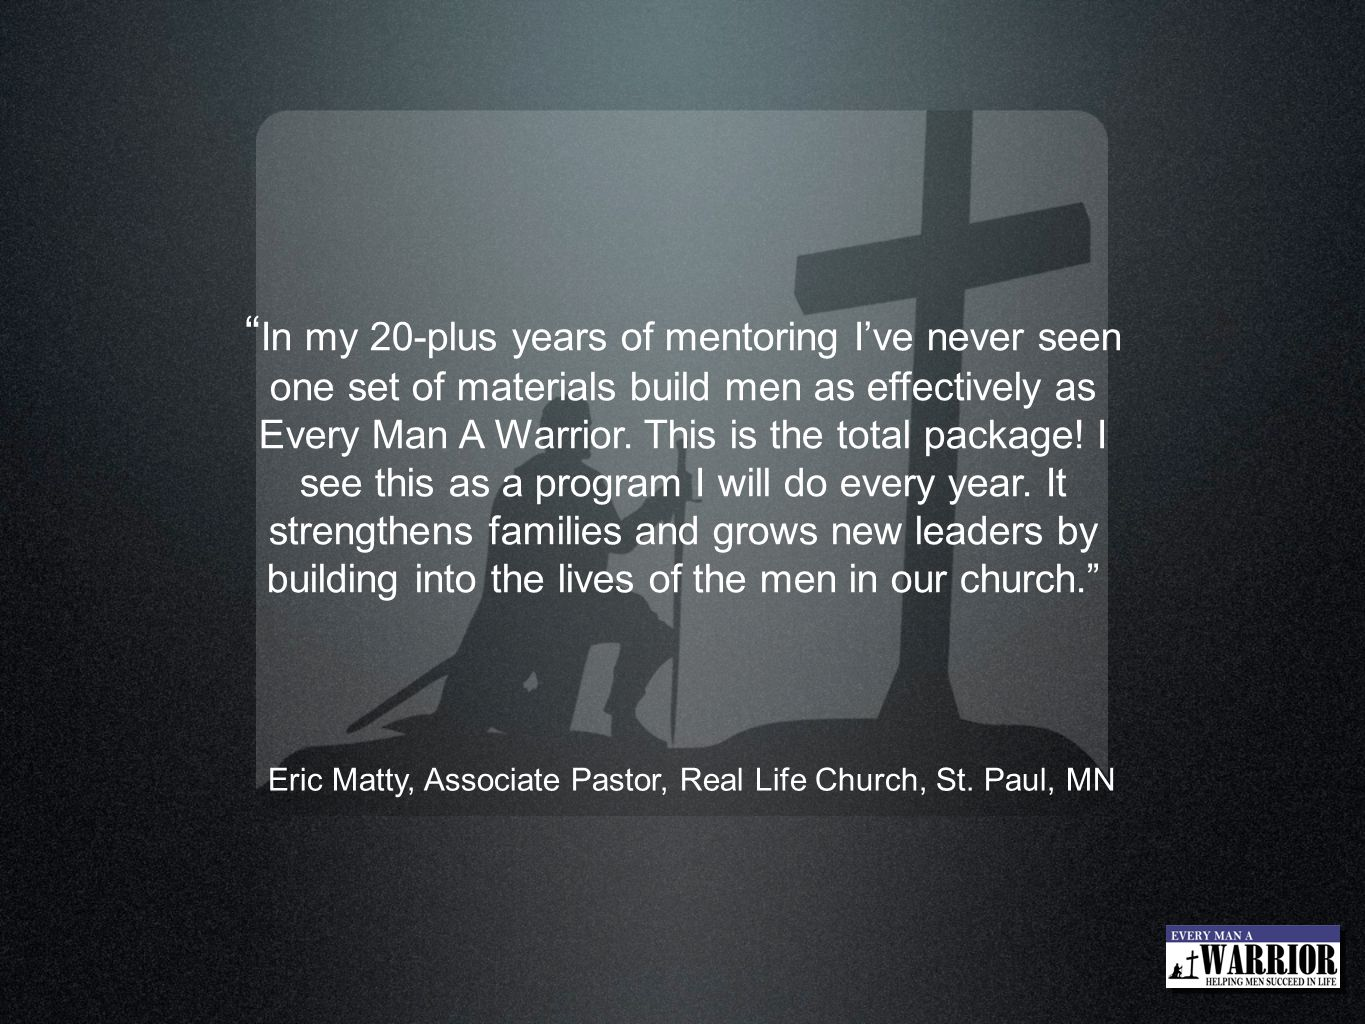 Eric Matty, Associate Pastor, Real Life Church, St. Paul, MN